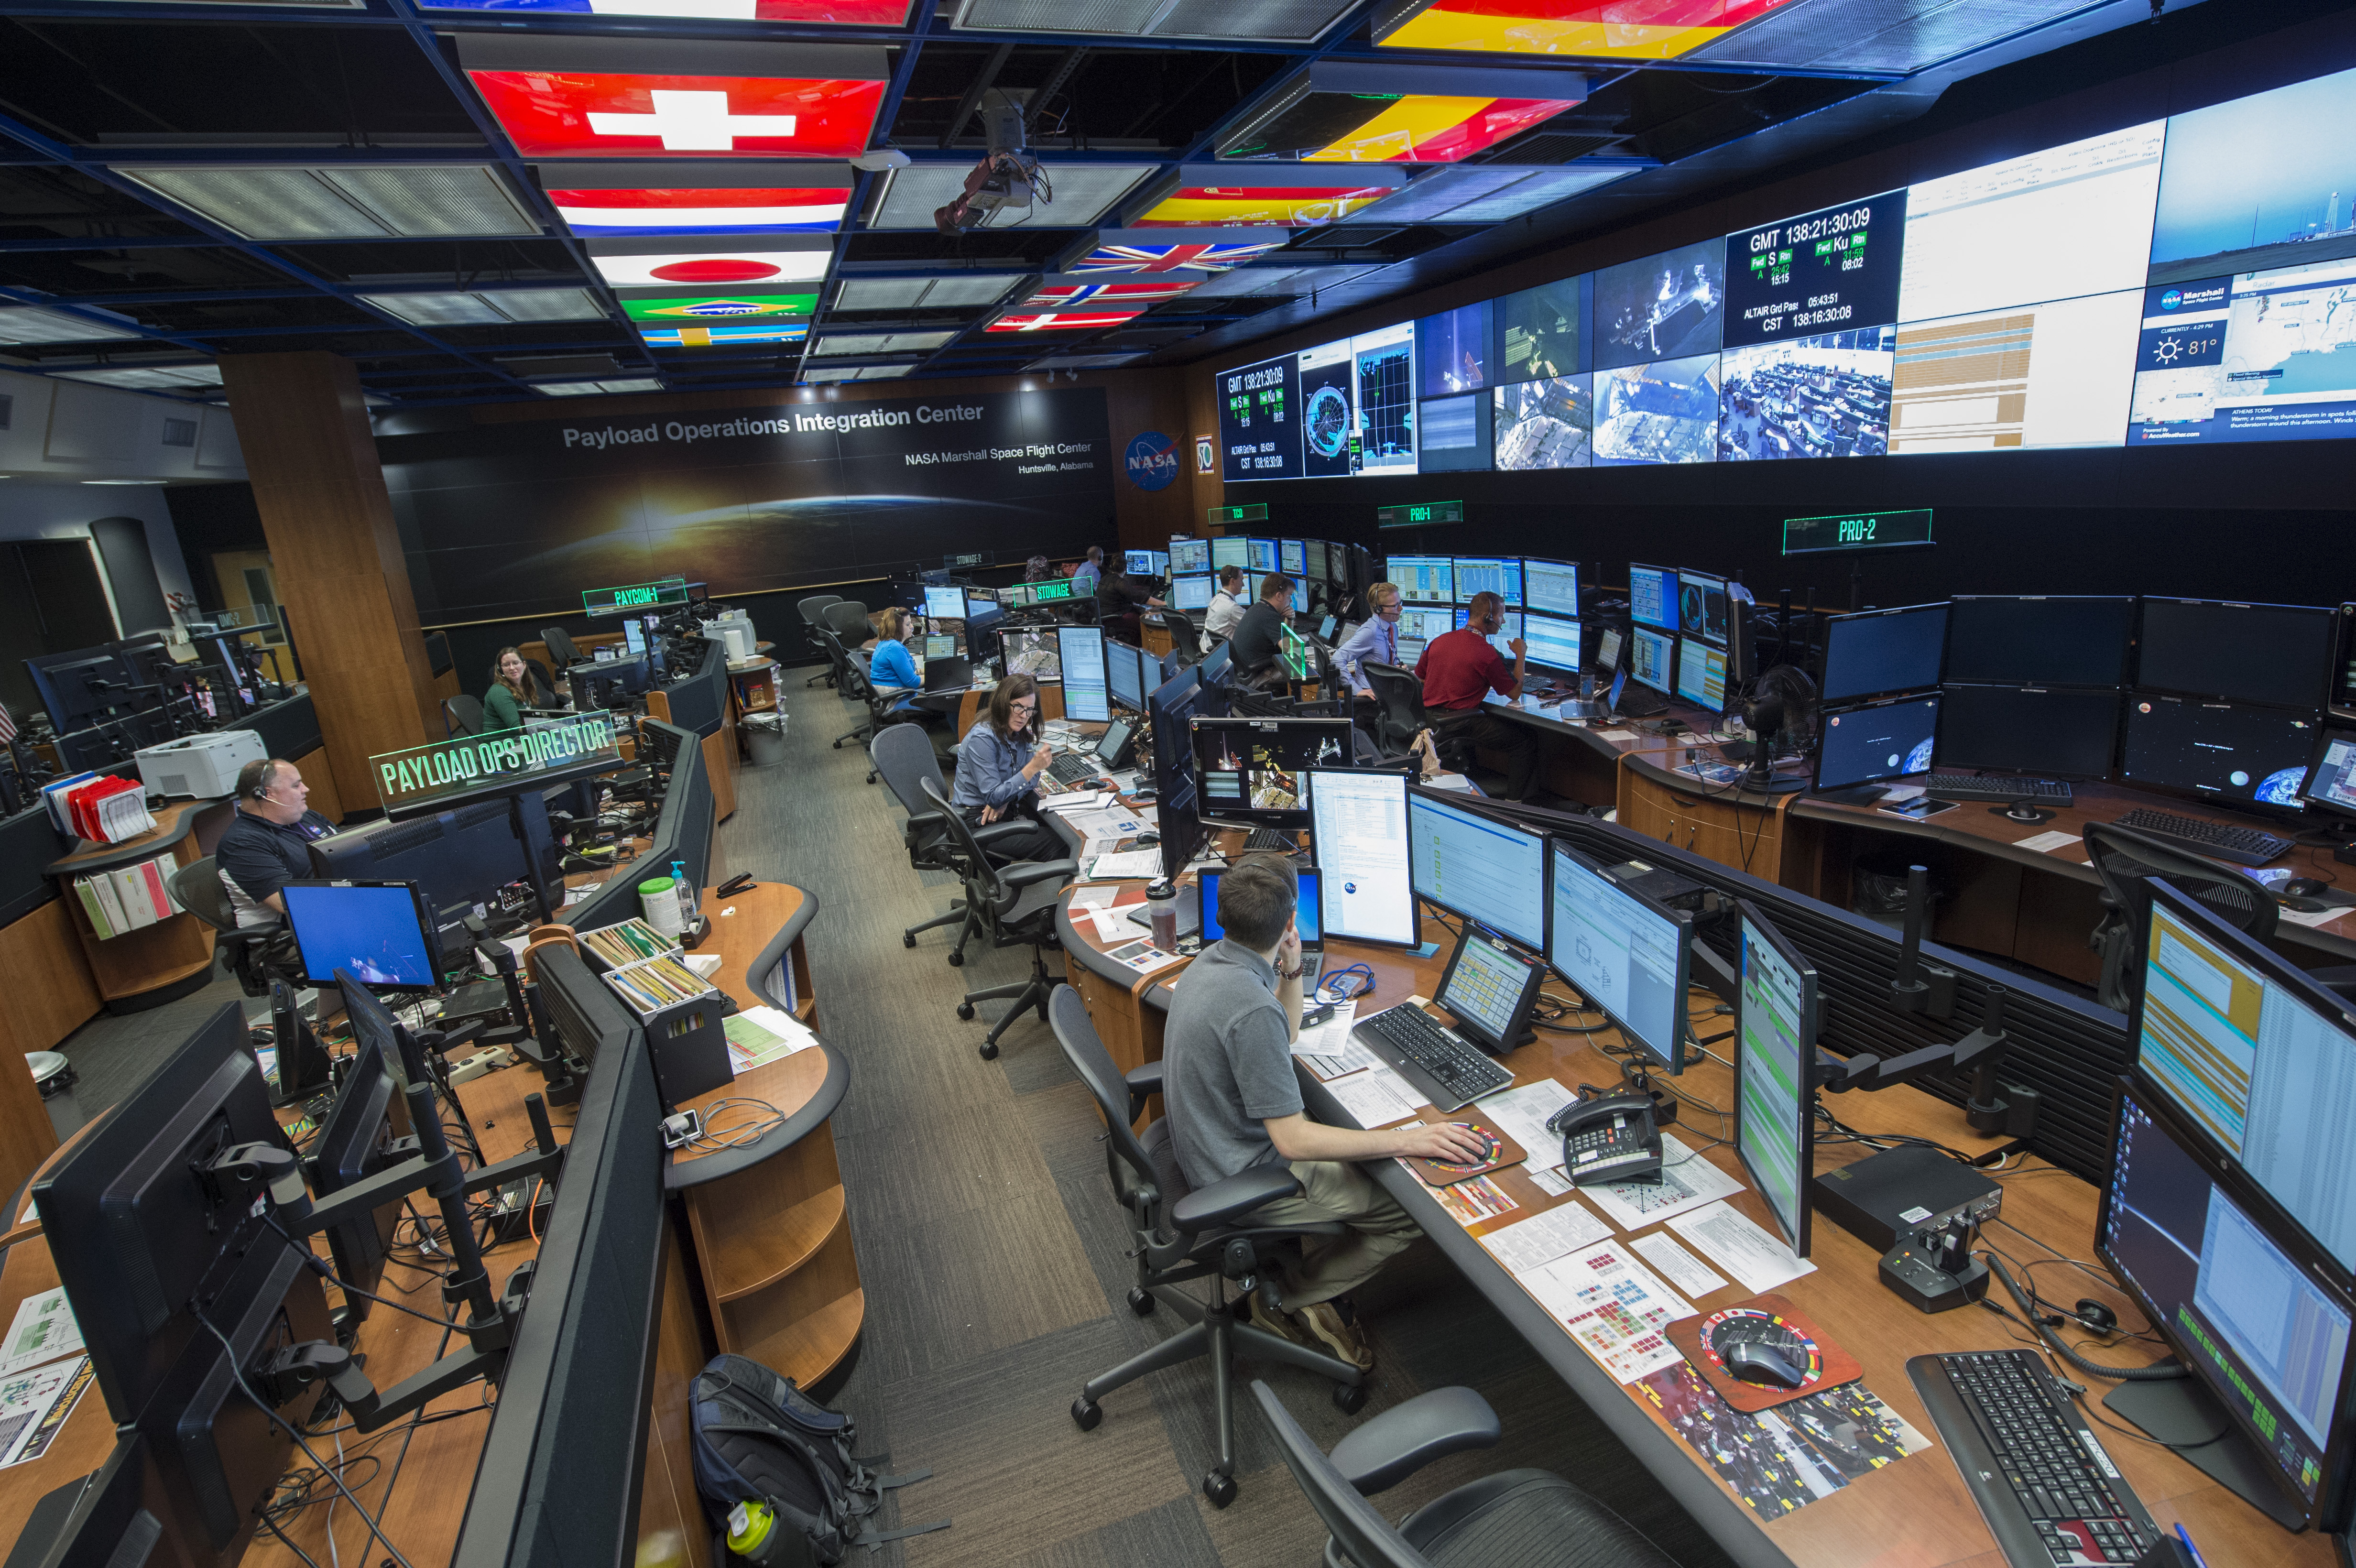 People talking clip art in addition 3d home design house additionally - The Payload Operations Integration Center Instituted A New High Tempo Operations Workflow April 24